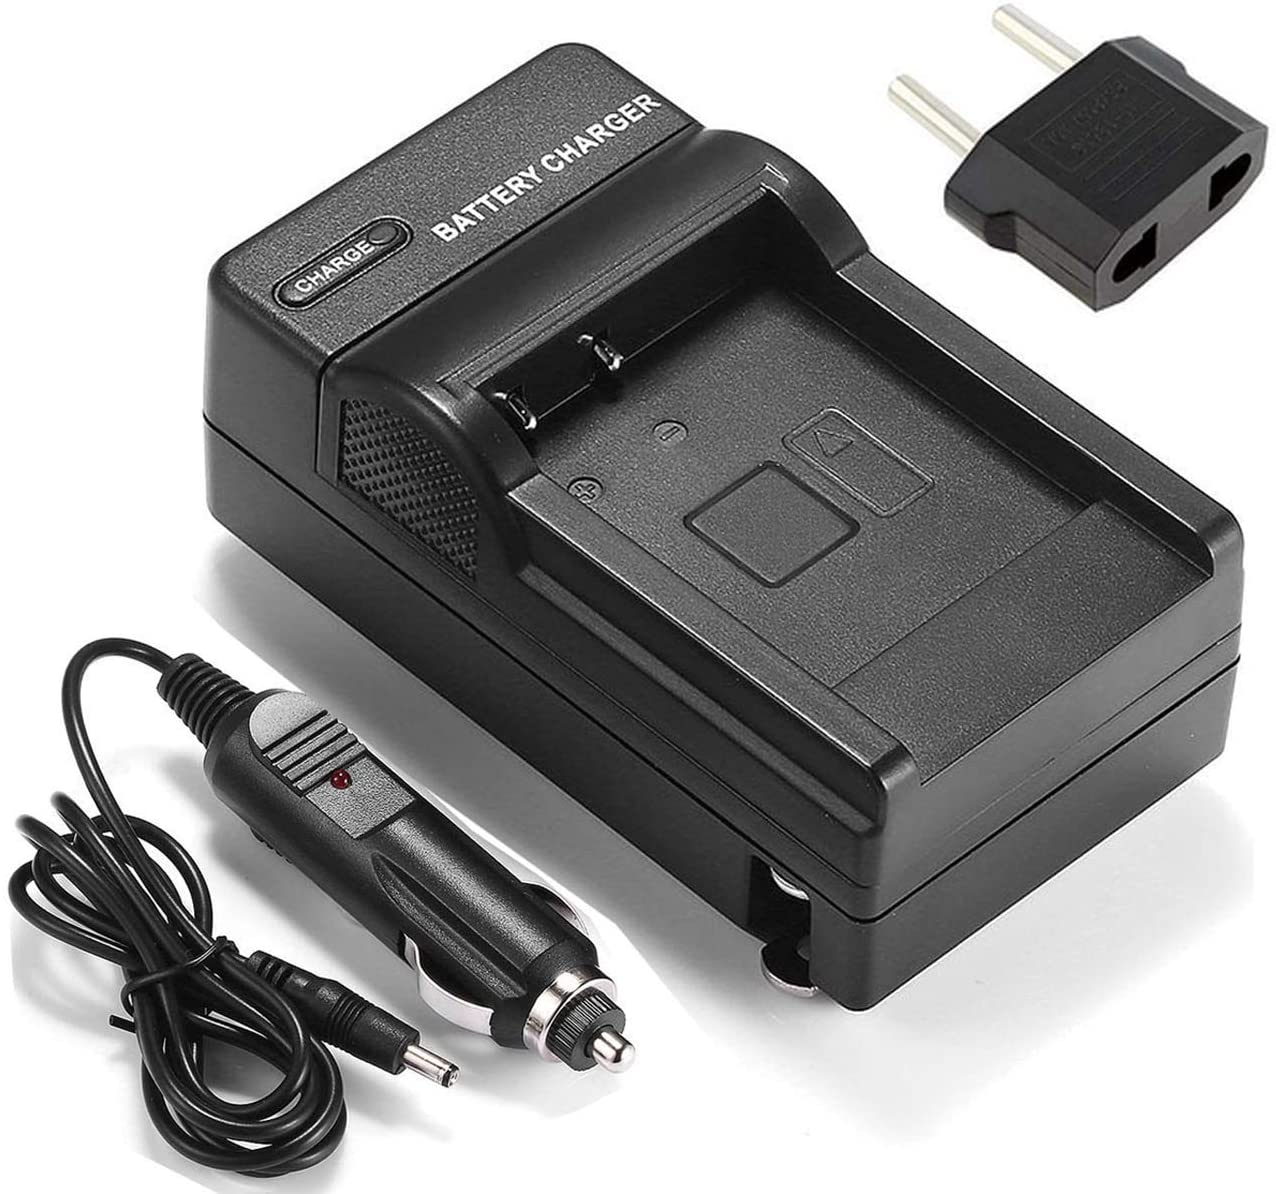 HDC-SX5 HDC-DX3 HDC-SX5P//PC Camcorder Battery Charger for Panasonic HDC-DX1